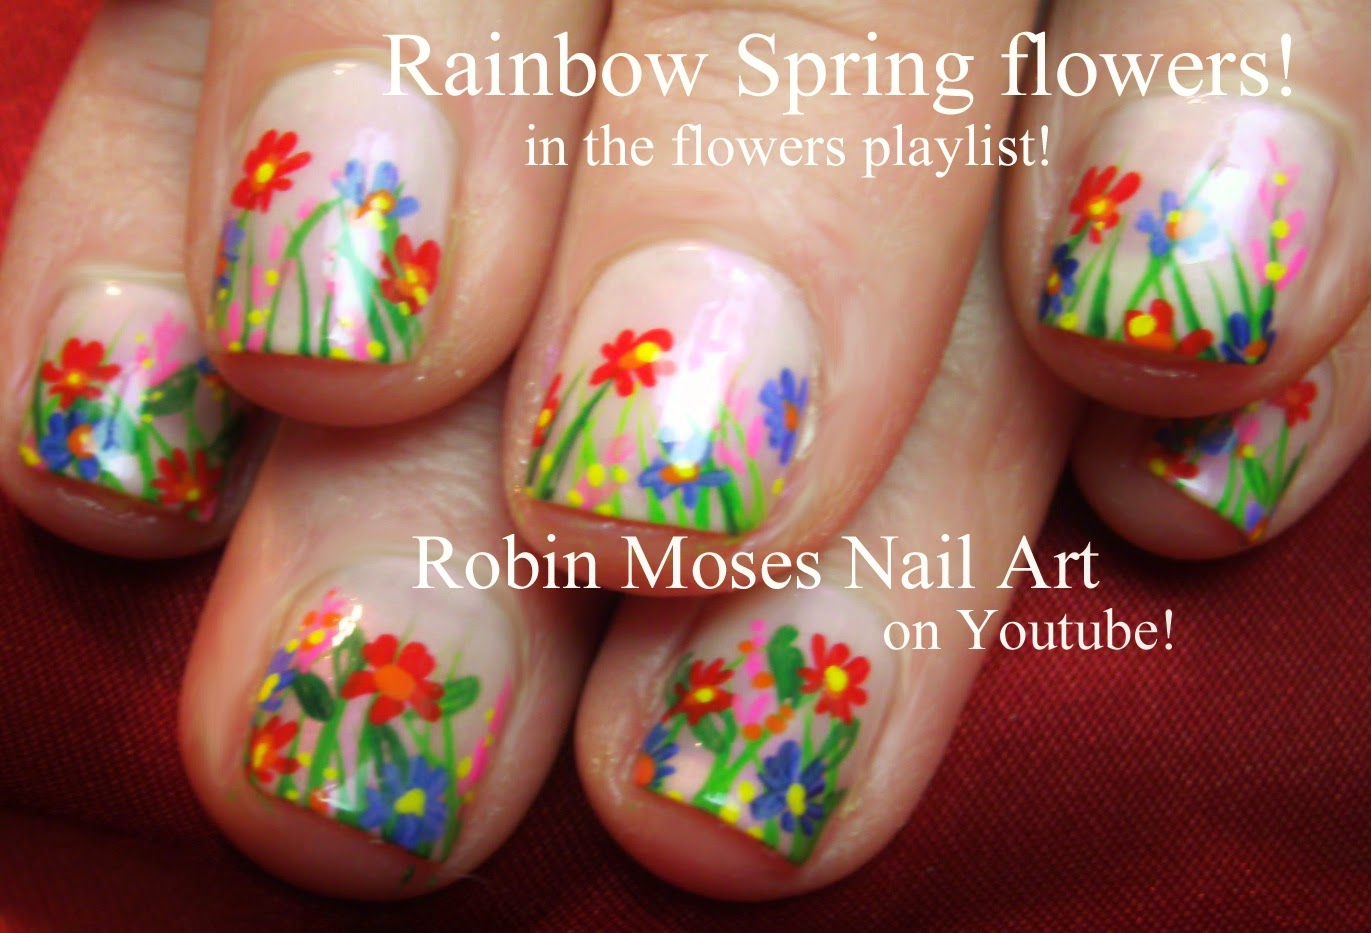 Short Nail Art Colorful Flower Design Spring Garden Nails With Flowers Robin